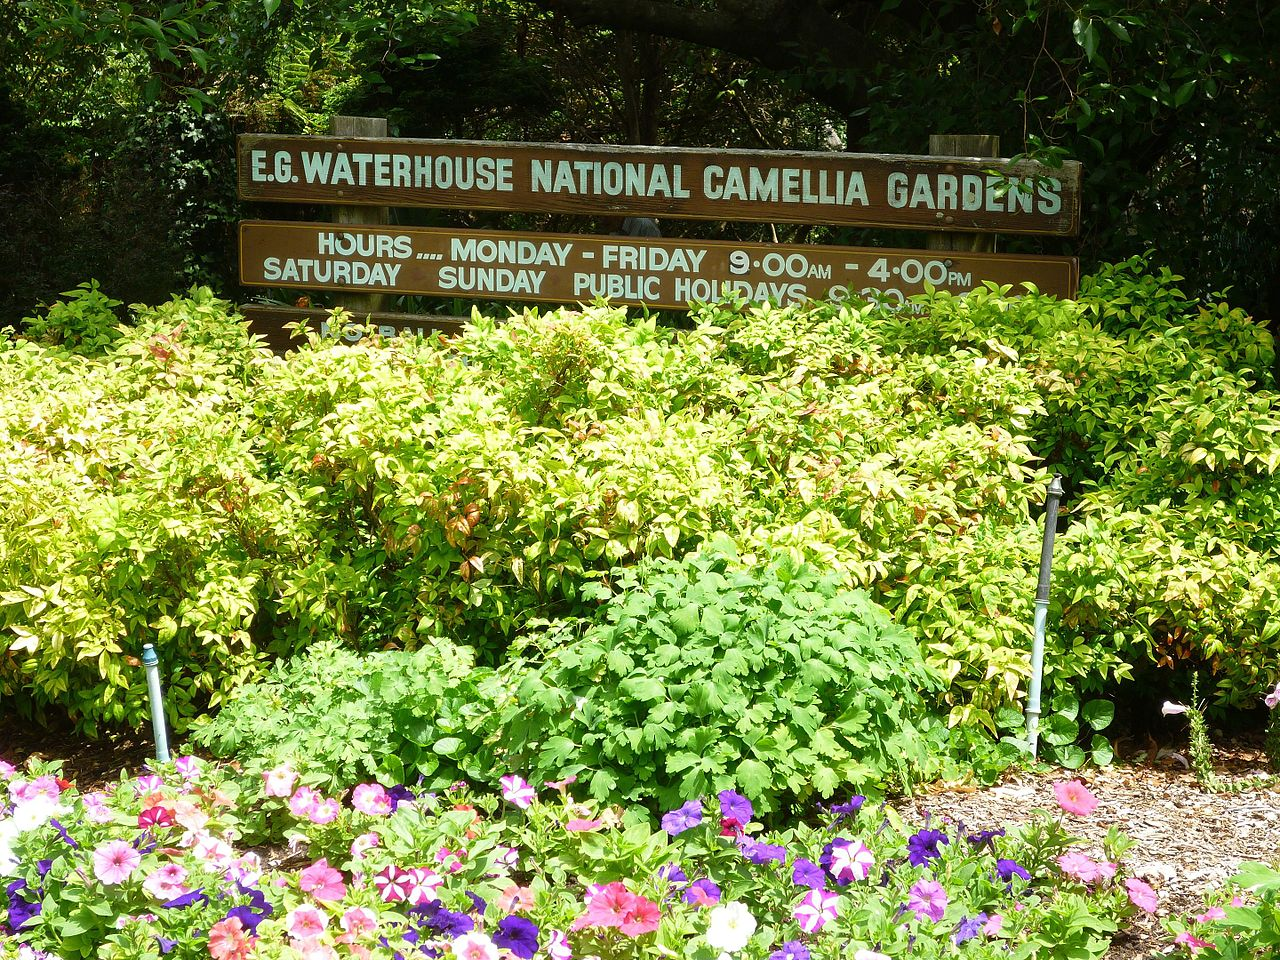 E. G.Waterhouse National Camellia Garden